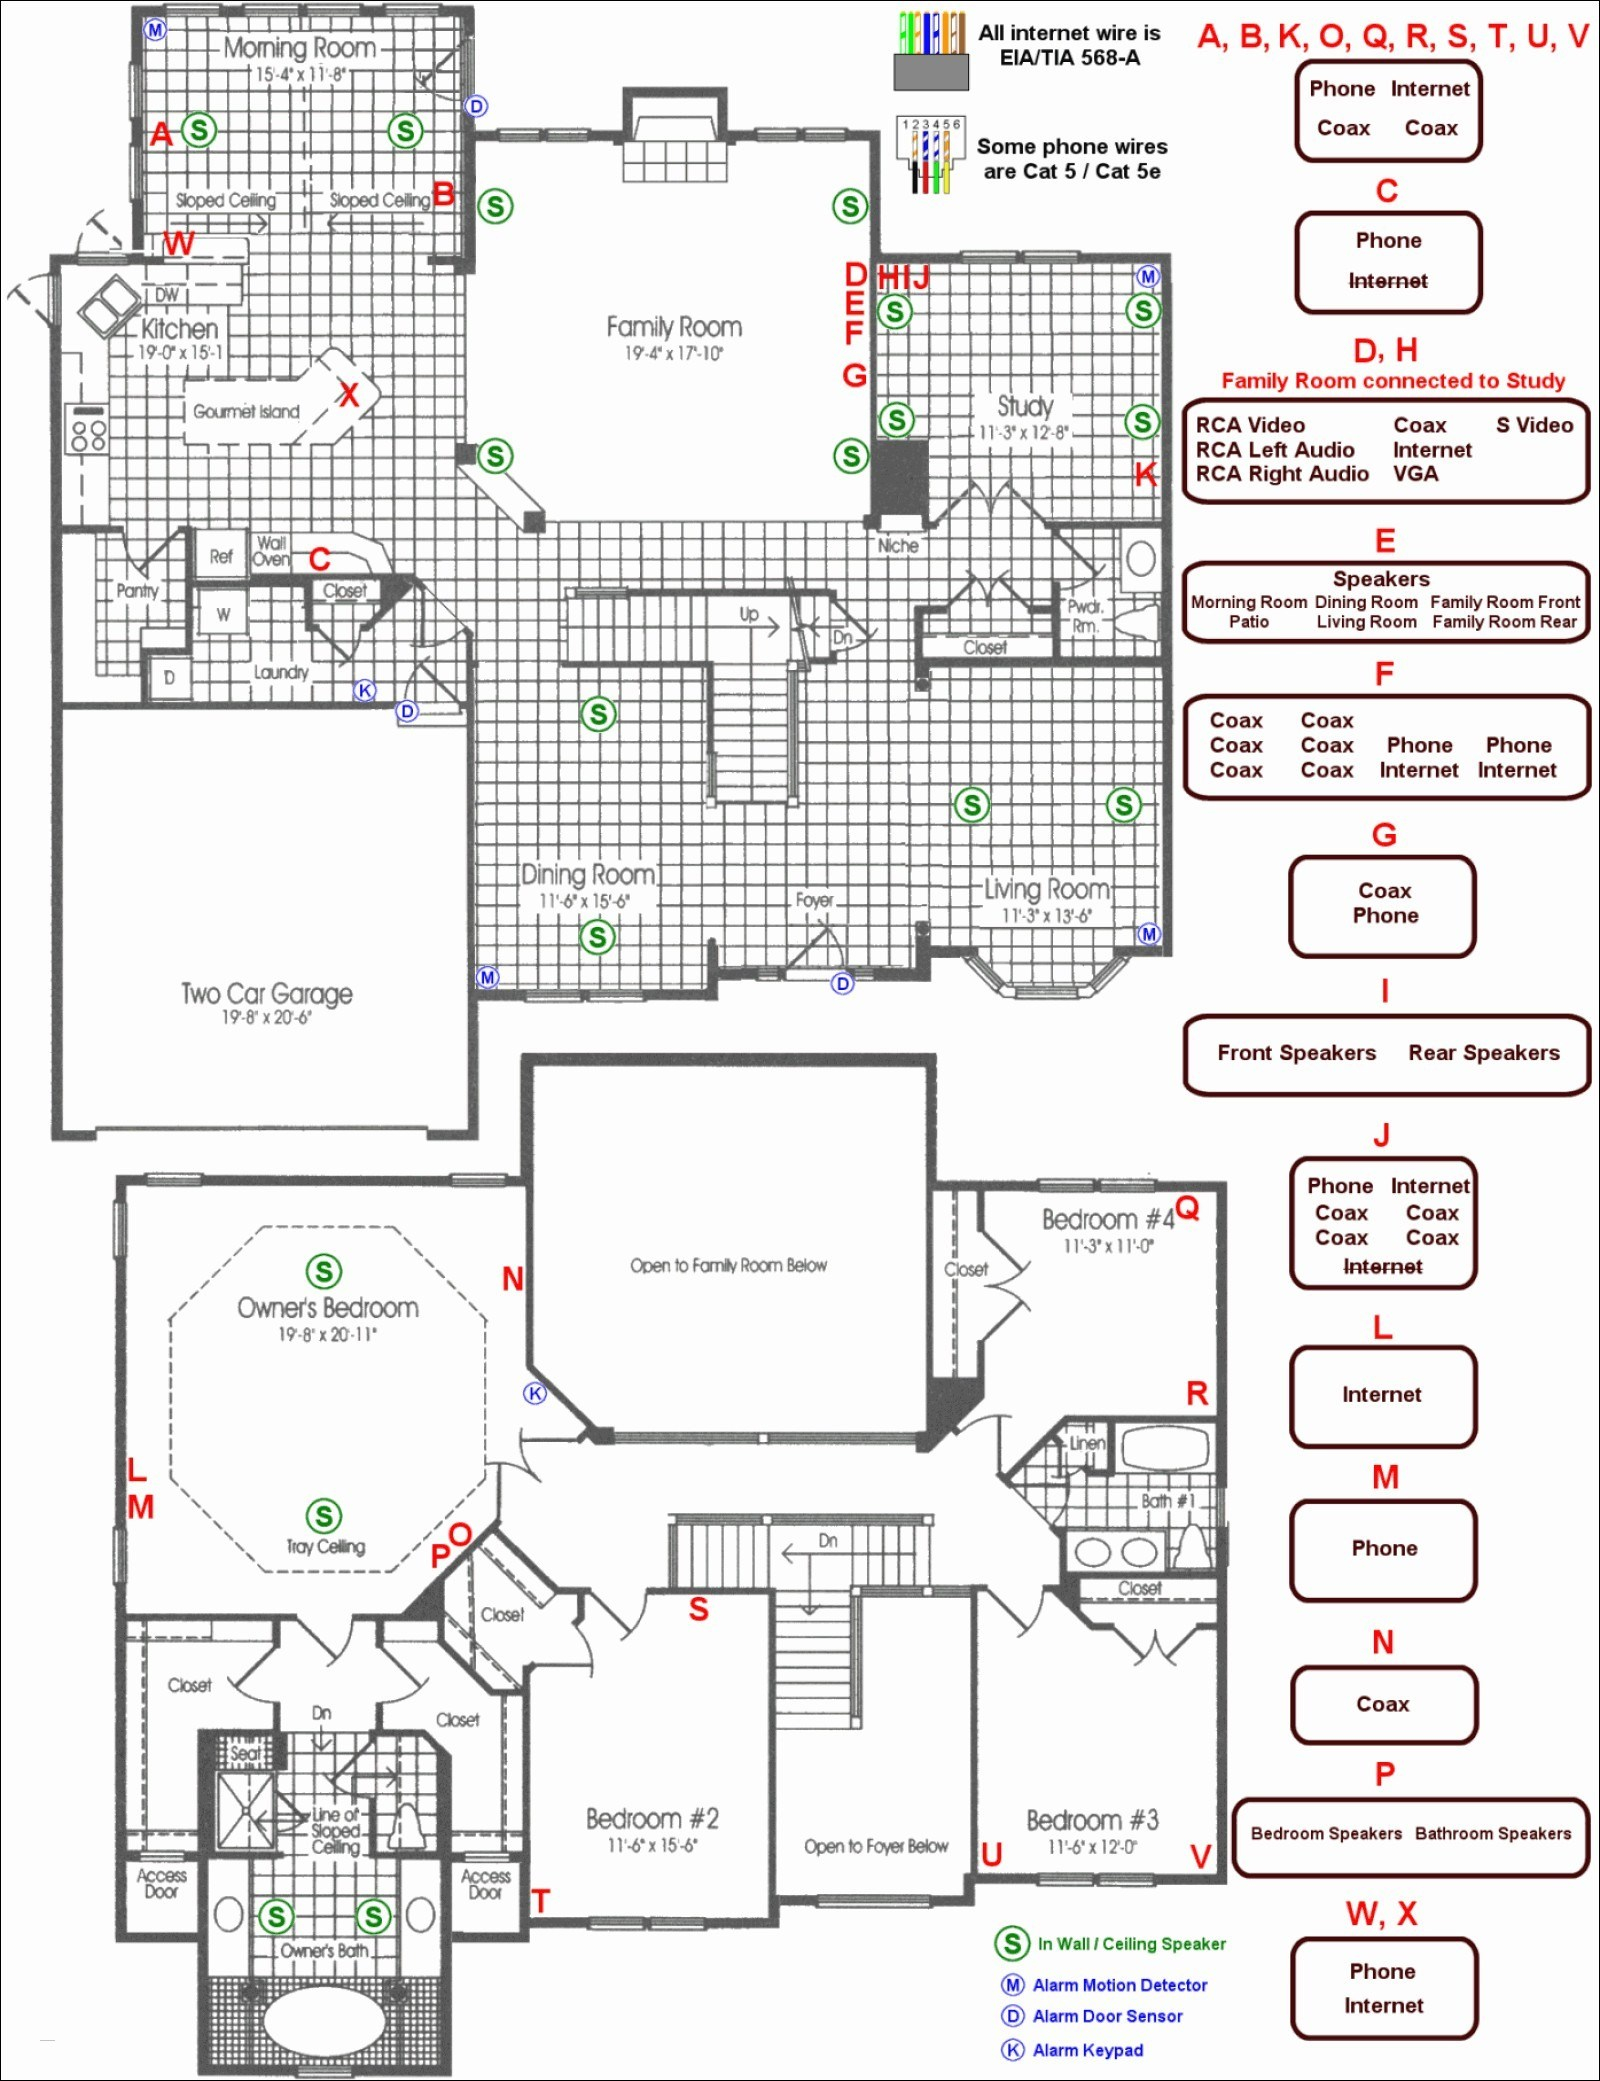 outdoor speaker wiring diagram 3 gang one way switch home gallery sample